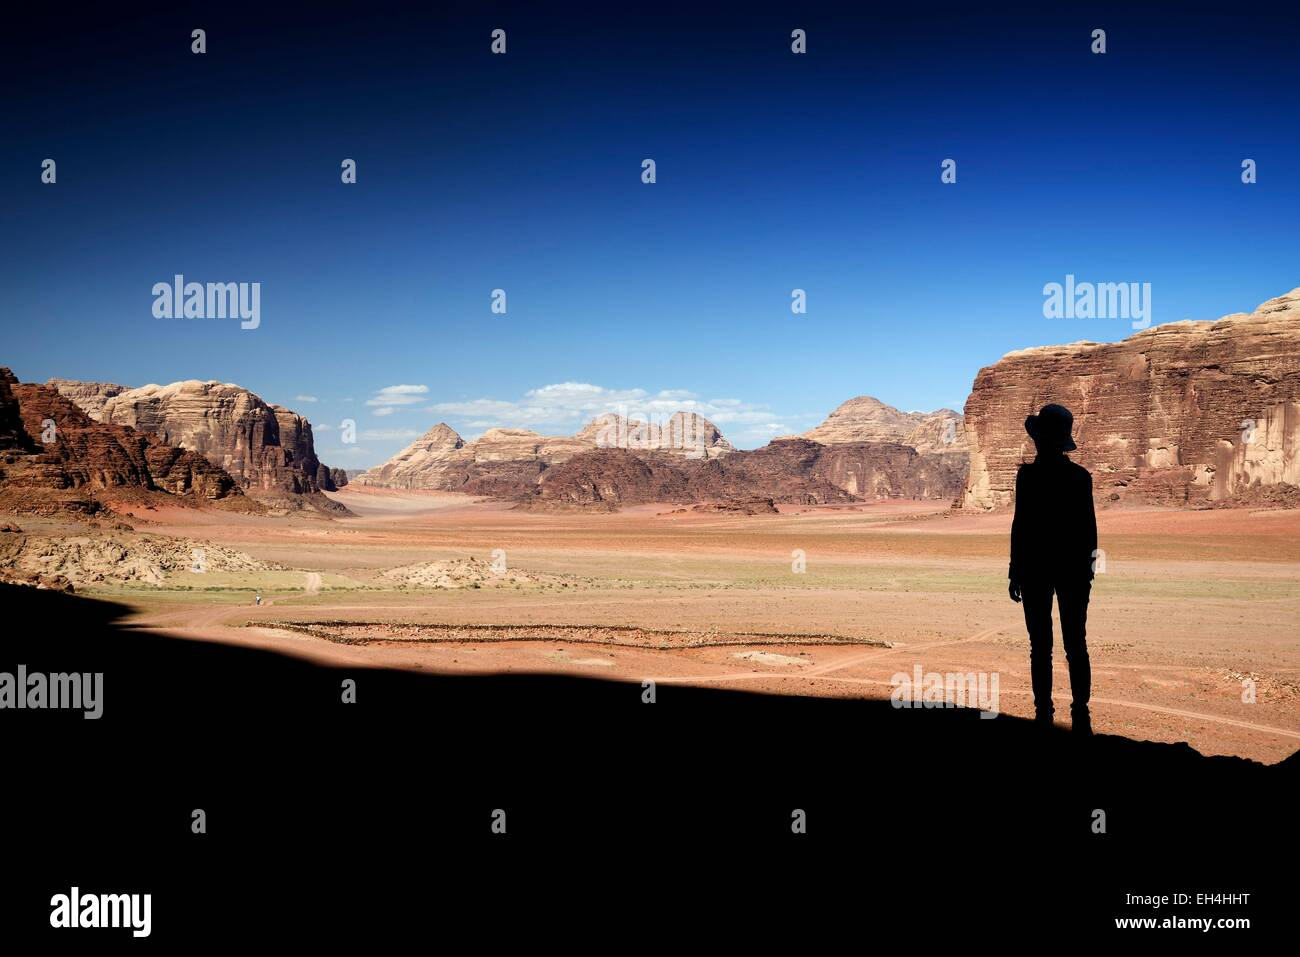 Jordan, Wadi Rum desert, protected area listed as World Heritage by UNESCO, silhouette of a woman and red sand desert - Stock Image